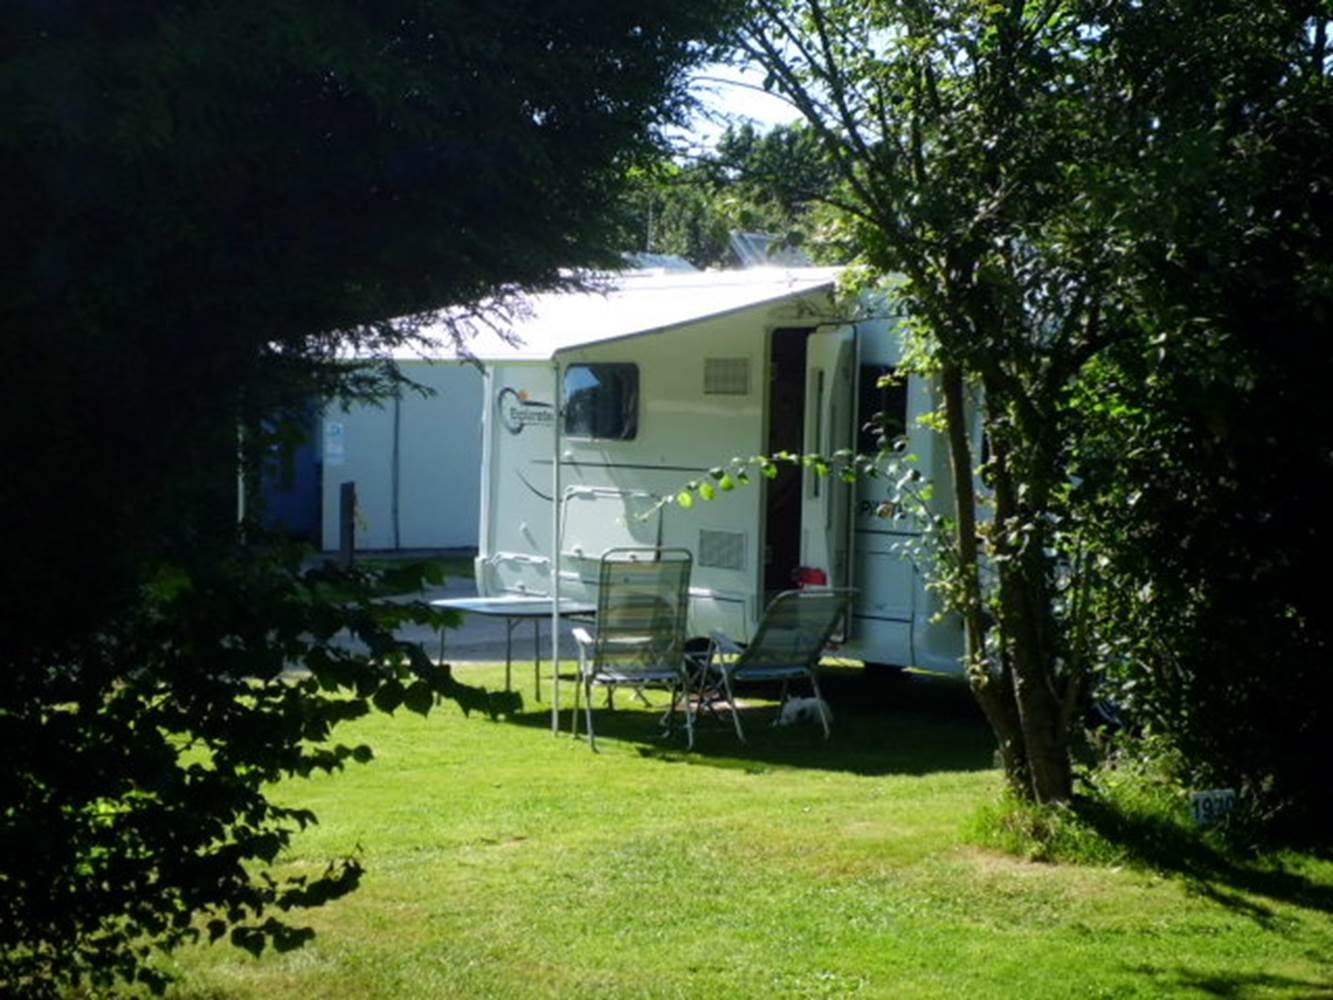 Camping des cerisiers © Mme Thimouy